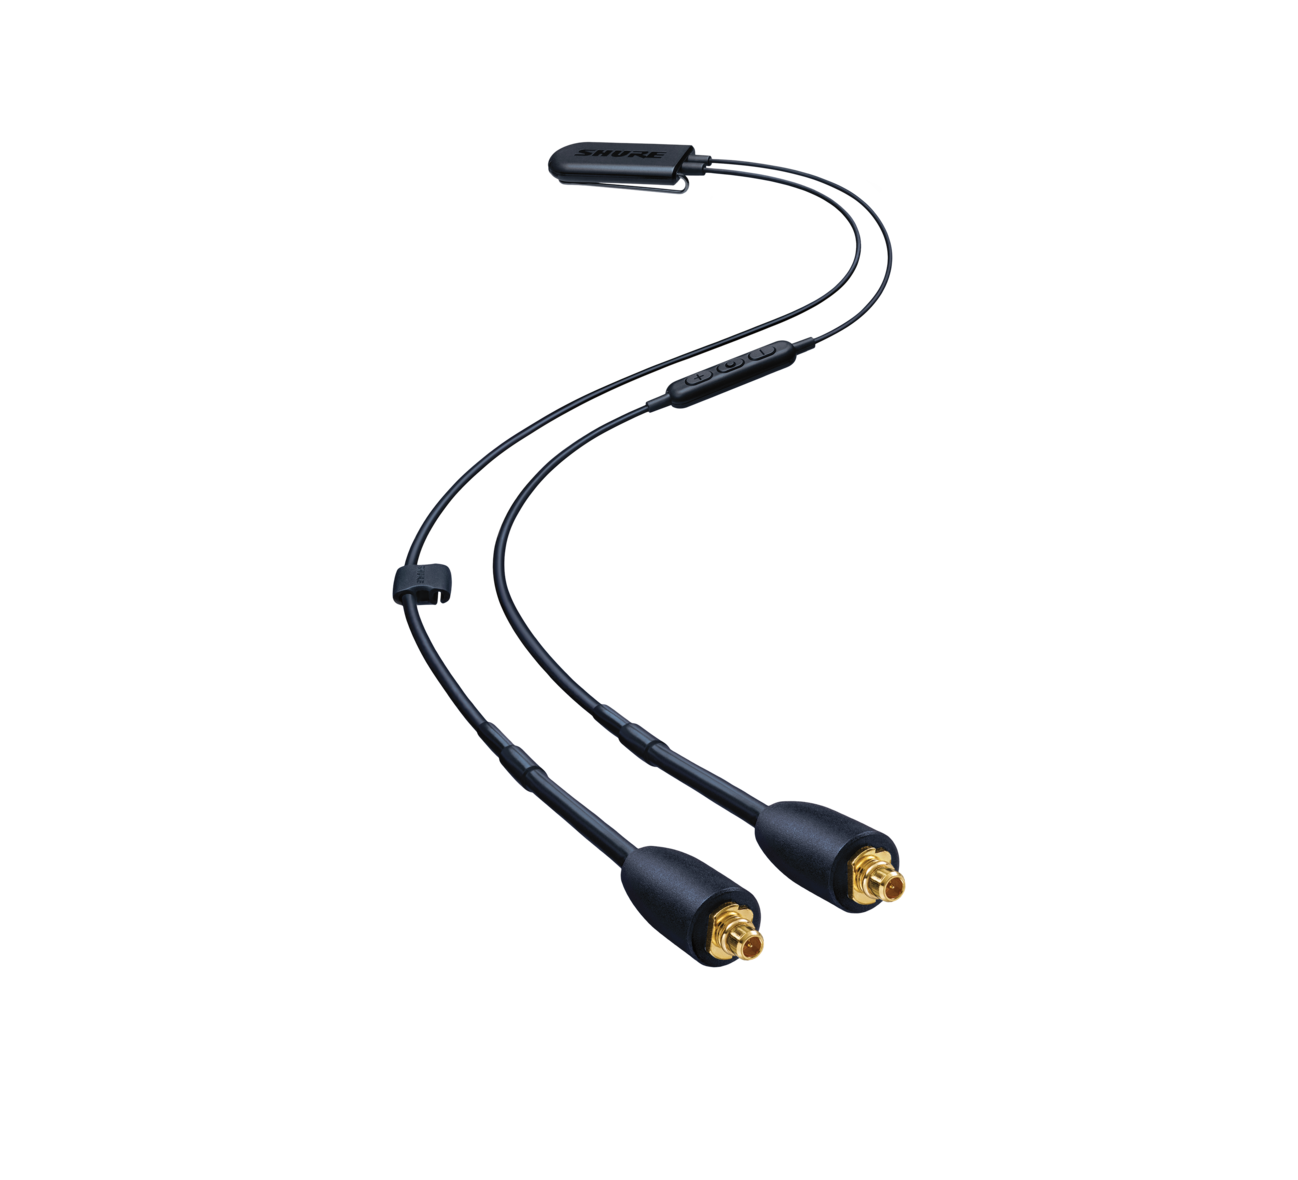 Headphones Wiring Diagram Together With Apple Headphone Wire Diagram